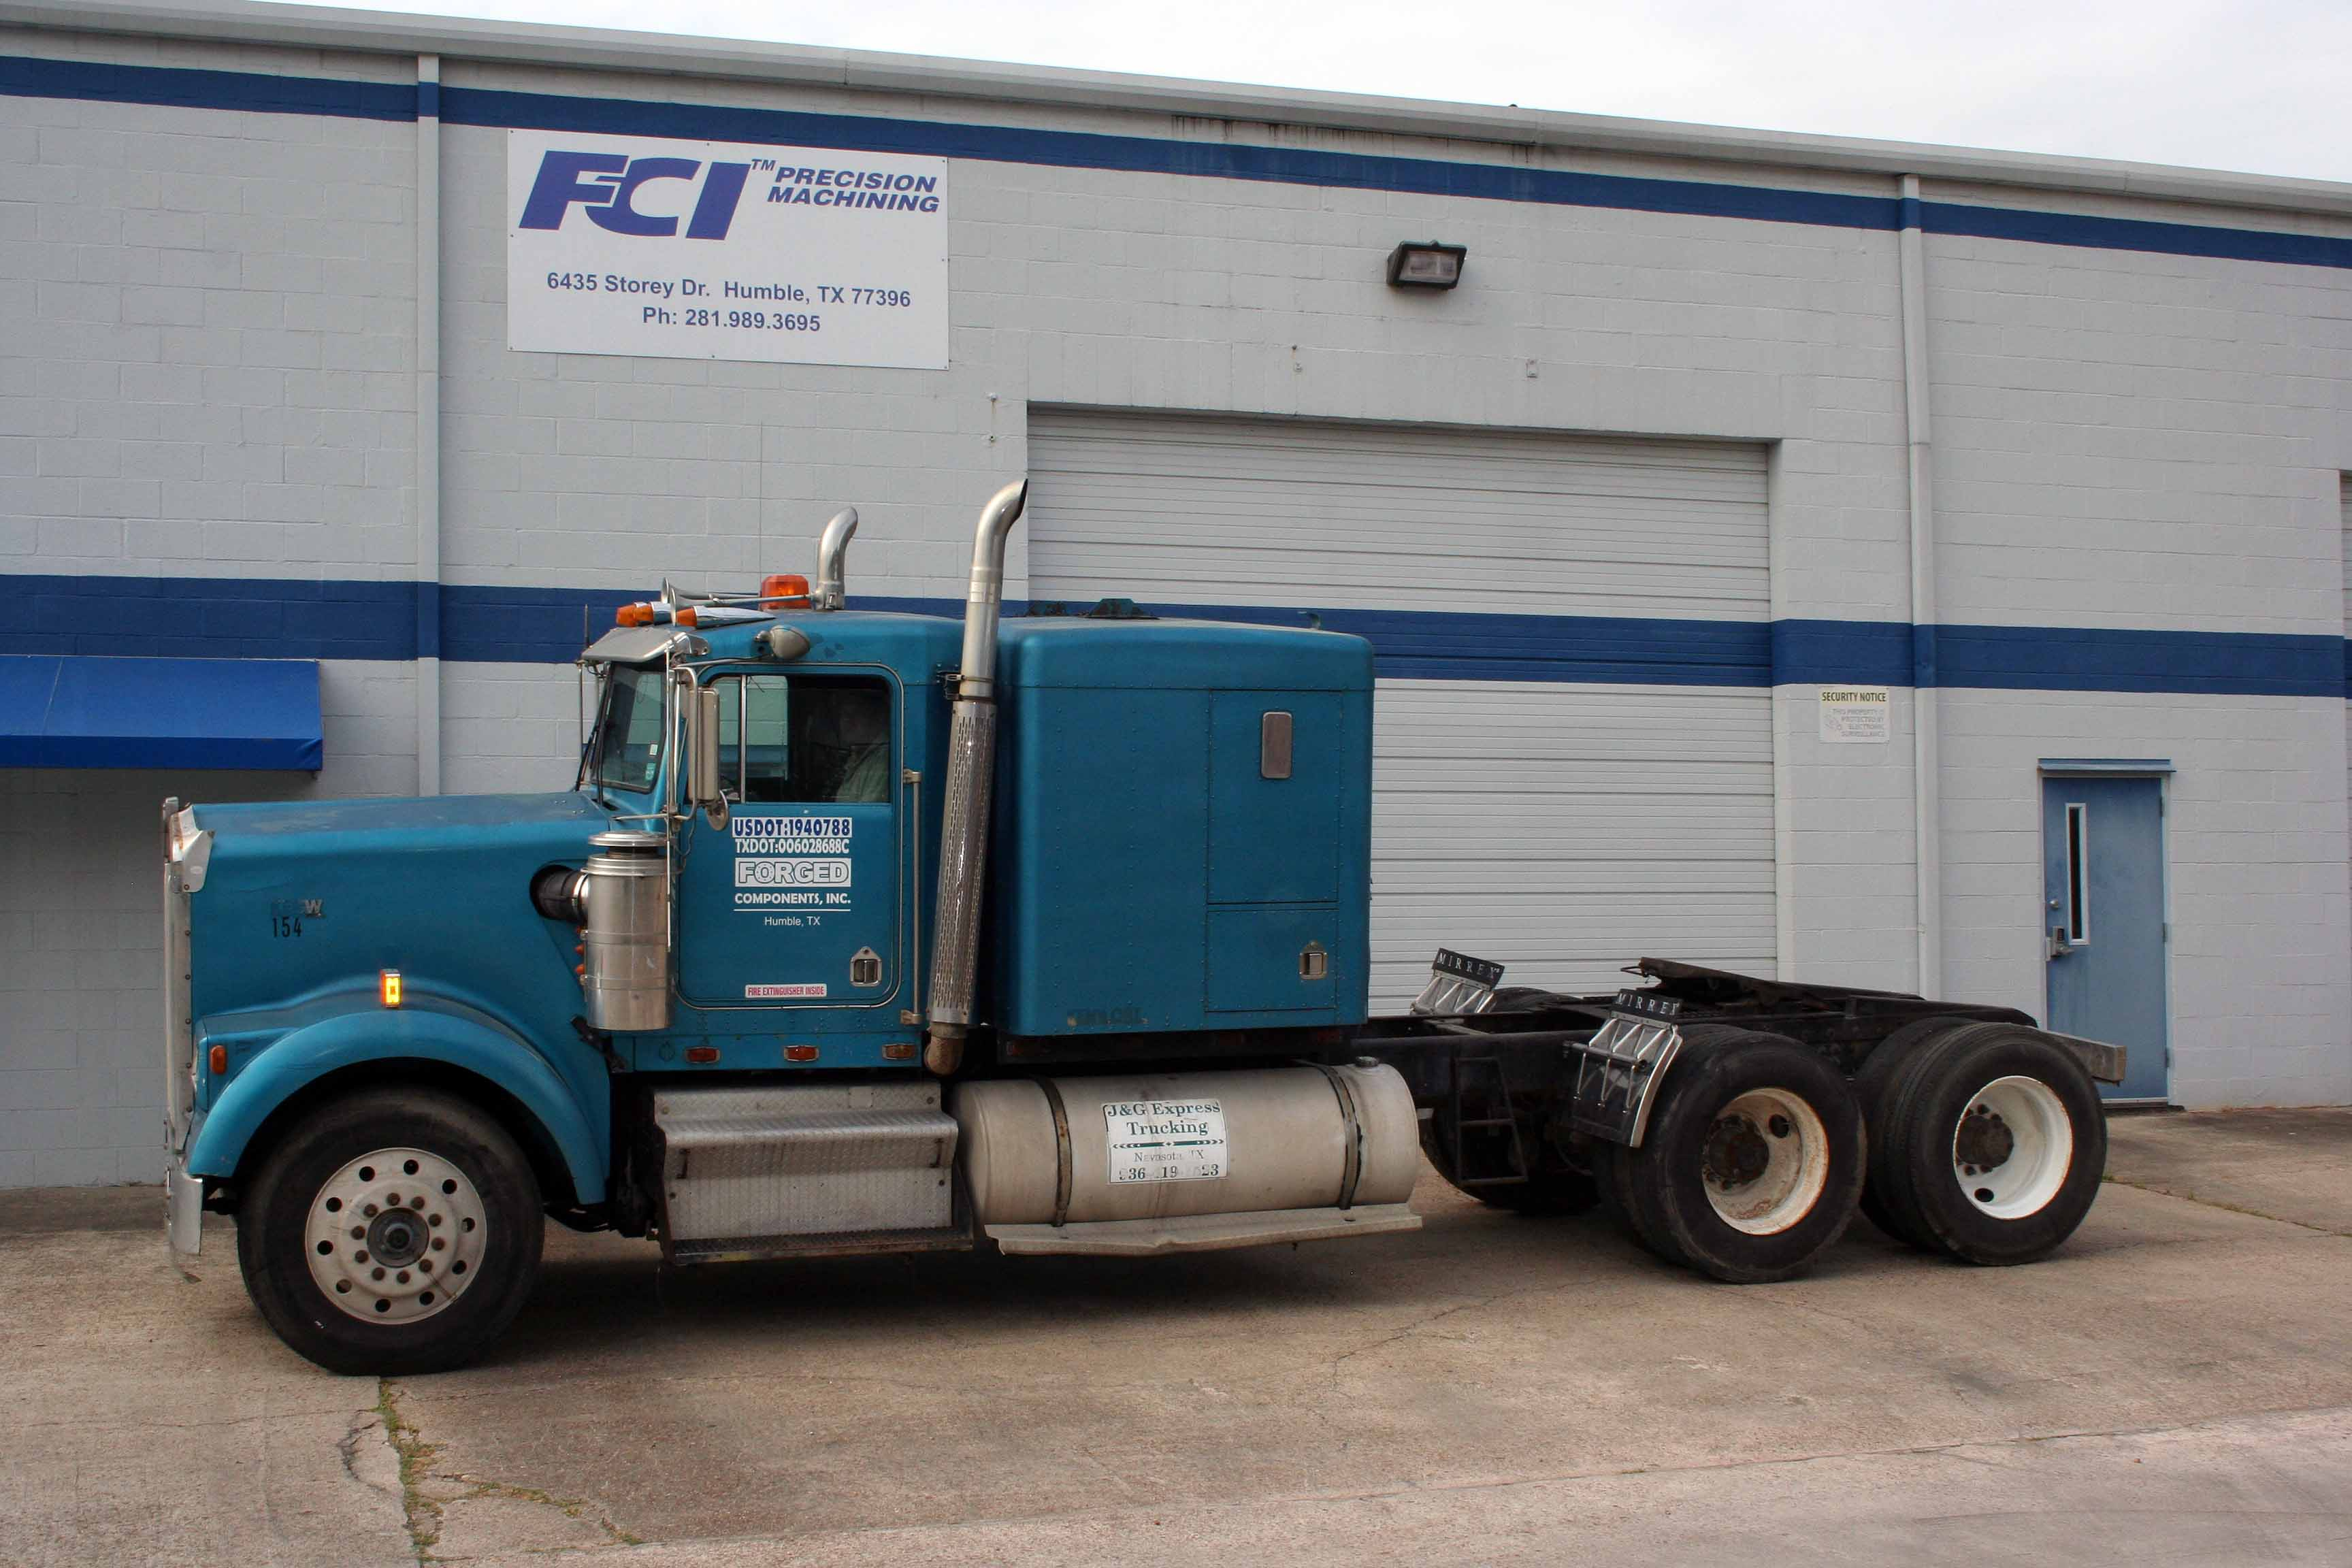 Lot 9 - TRACTOR, KENWORTH, new 1985, S/N 1XKWD9X4FK325939 (Location 1)